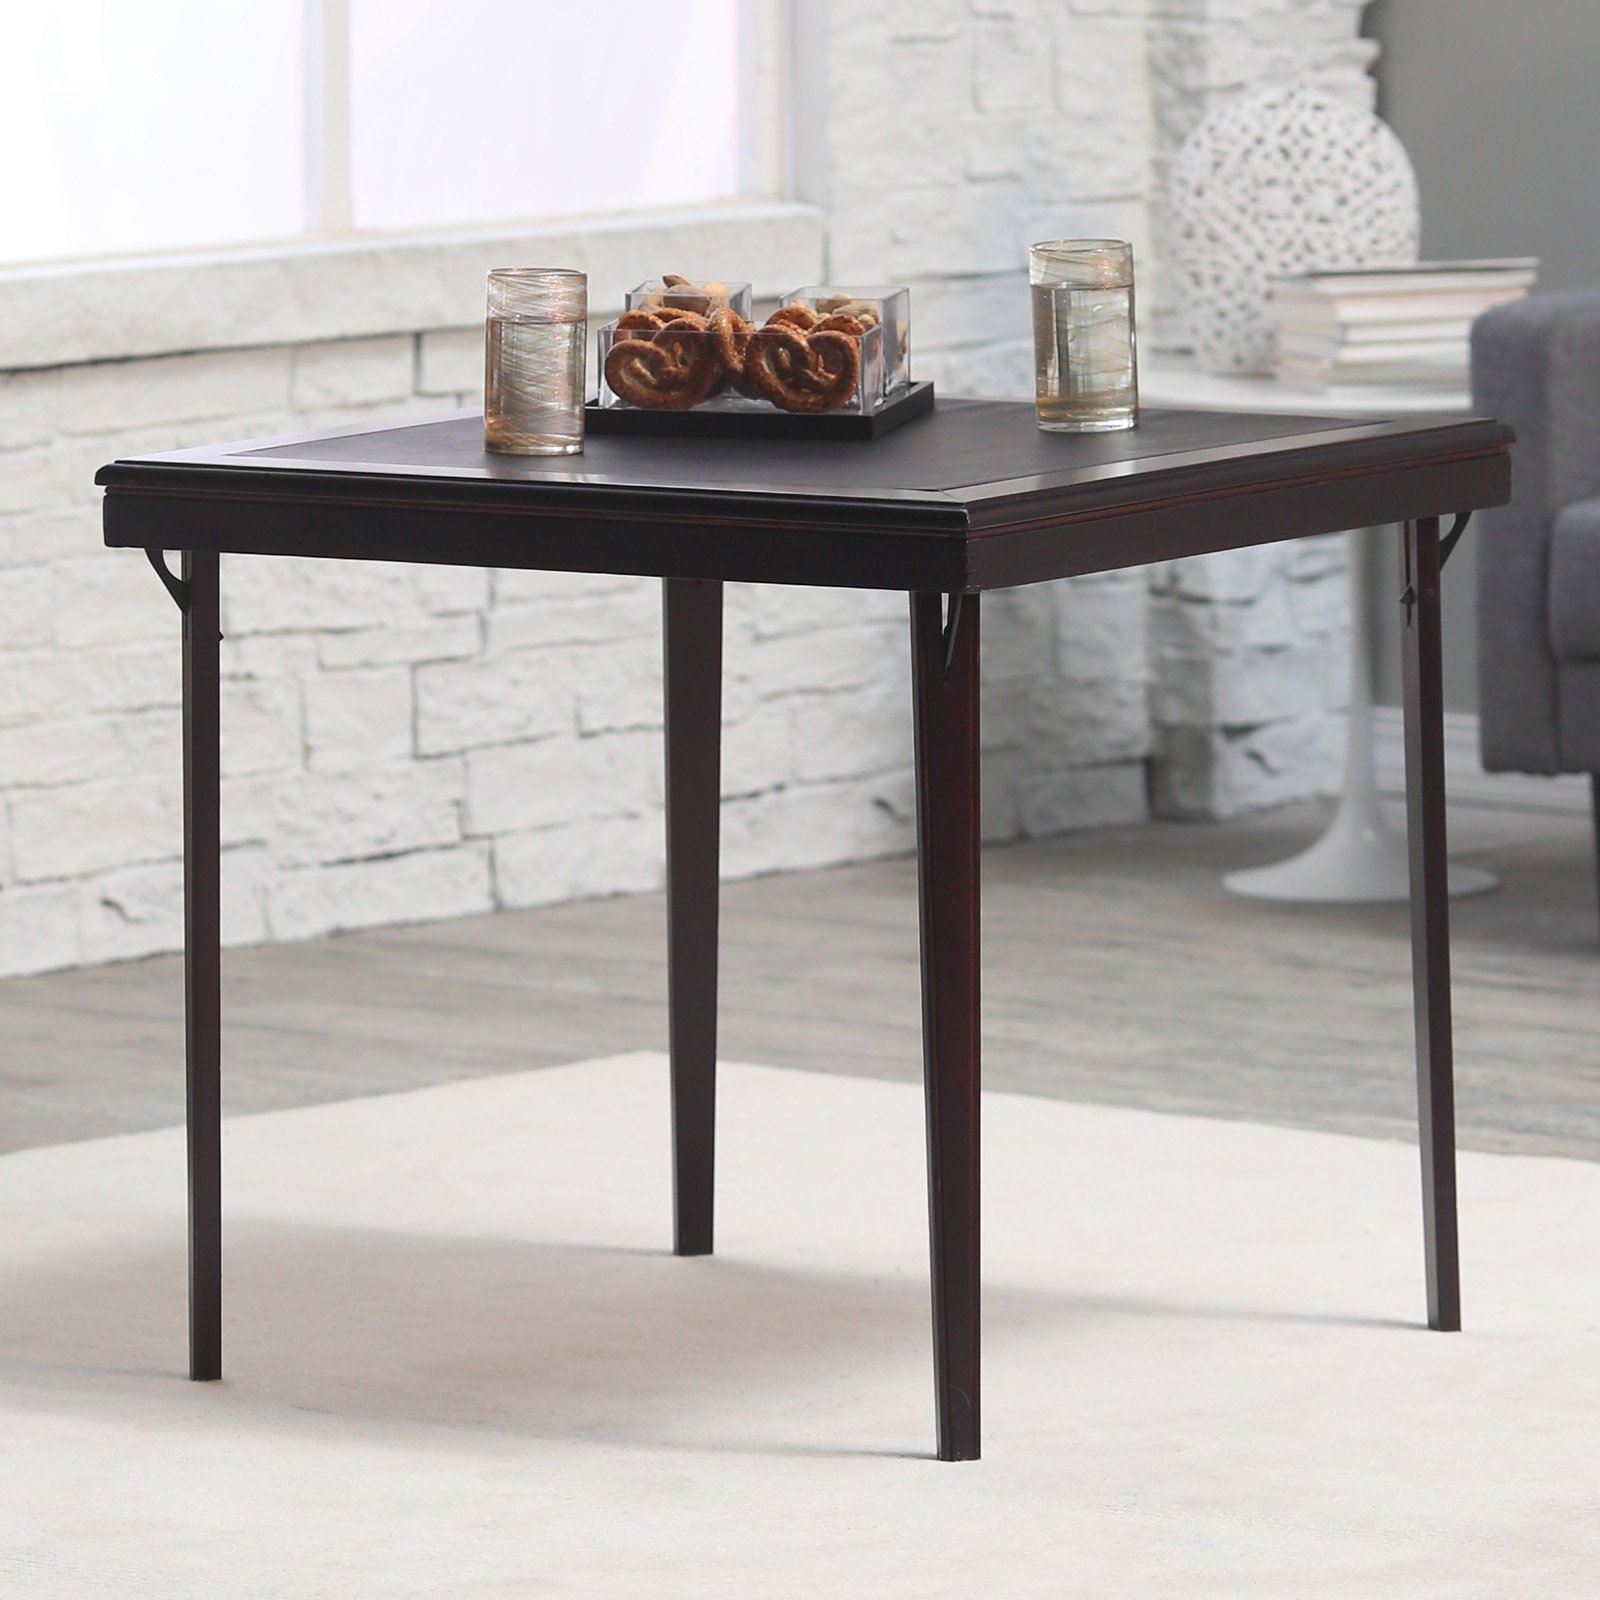 Numerous Ease Of Use Wood Folding Table